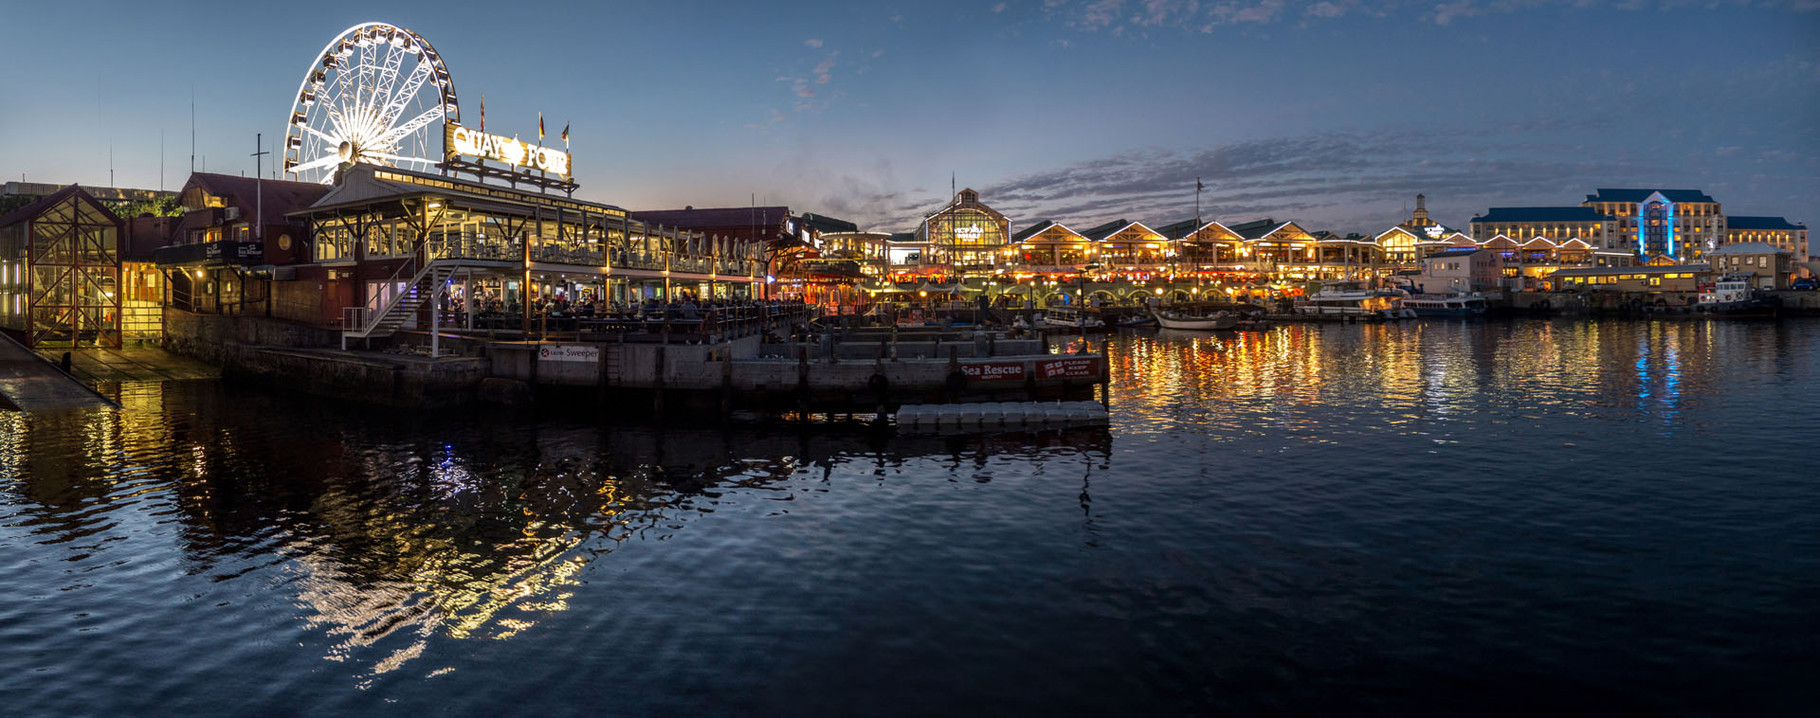 V+A Waterfront at sunset, Cape Town